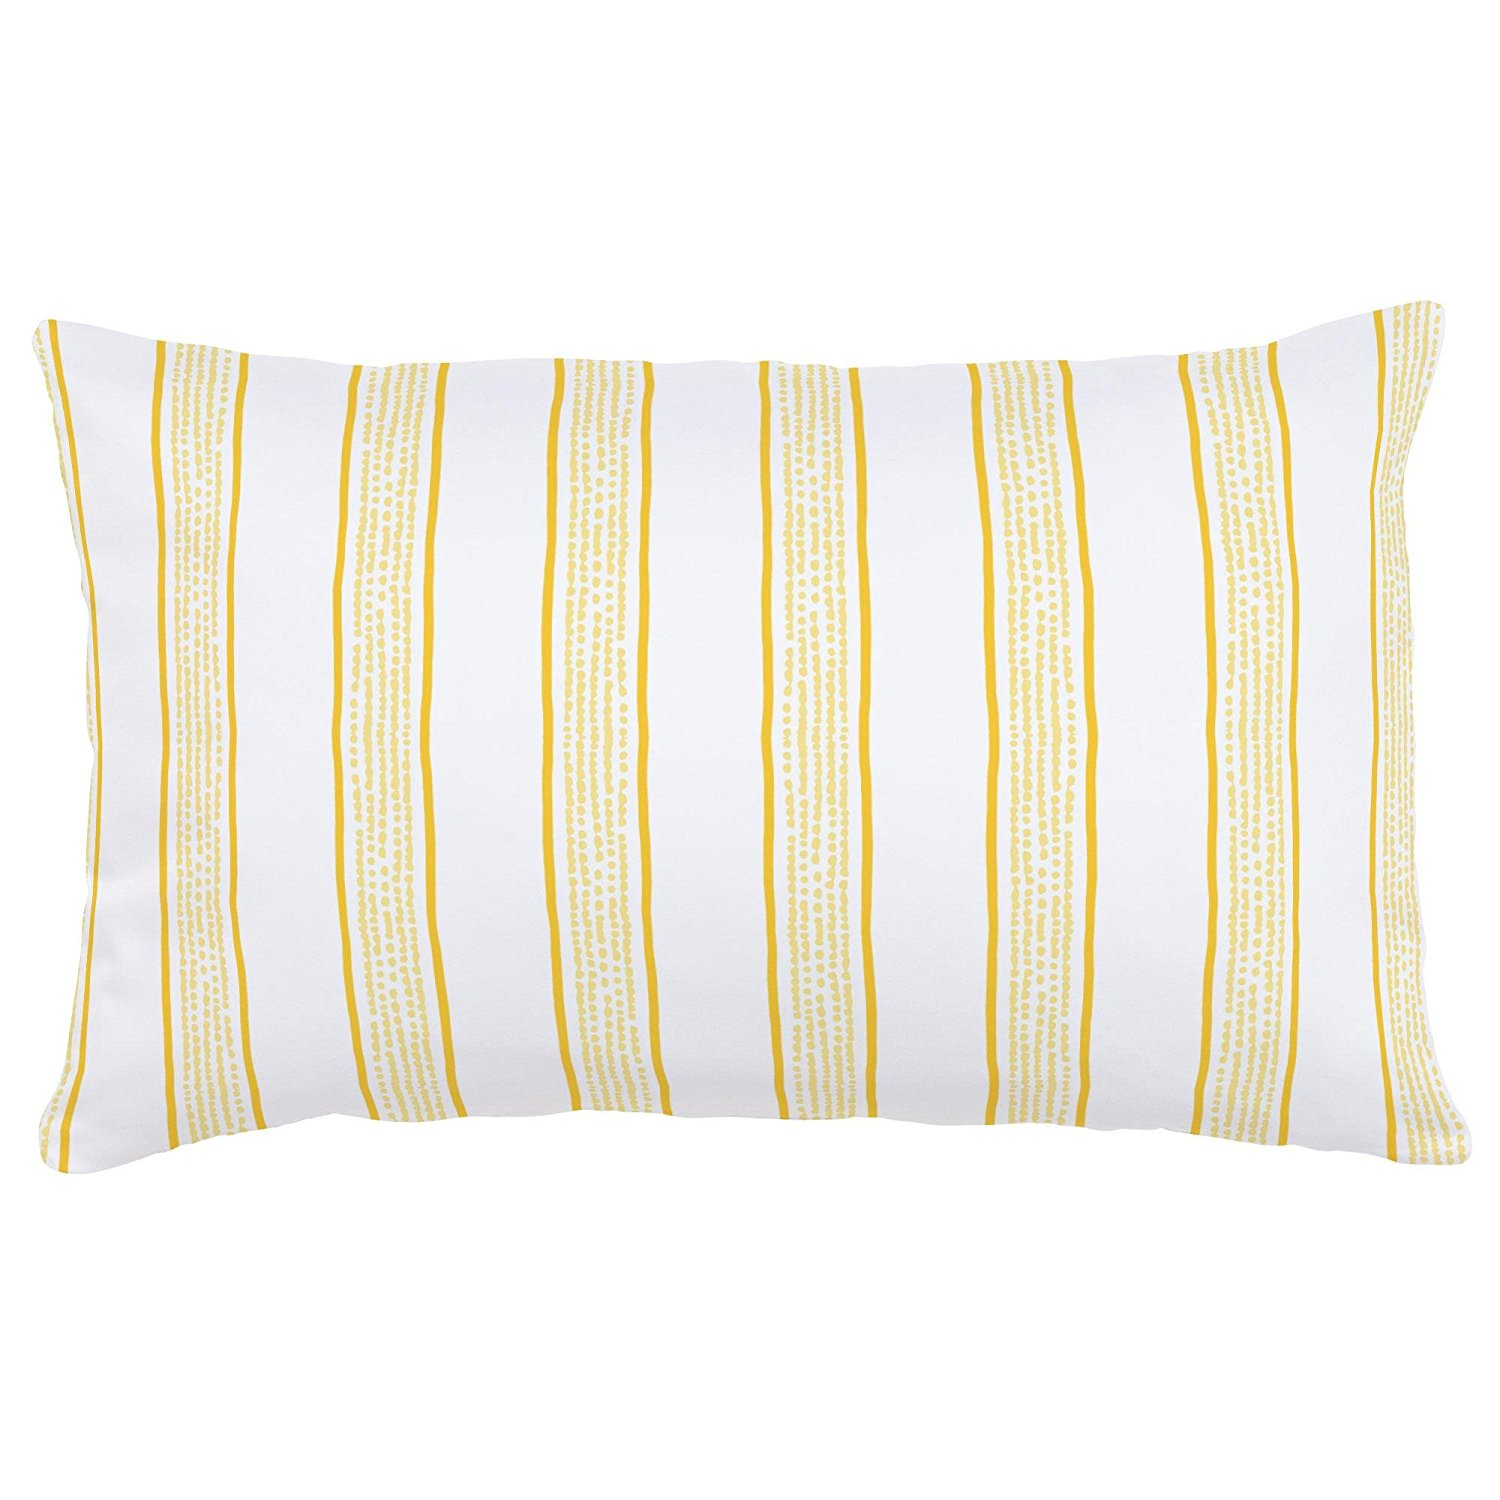 Carousel Designs Yellow Beach Stripe Lumbar Pillow - Organic 100% Cotton Lumbar Pillow Cover + Insert - Made in the USA